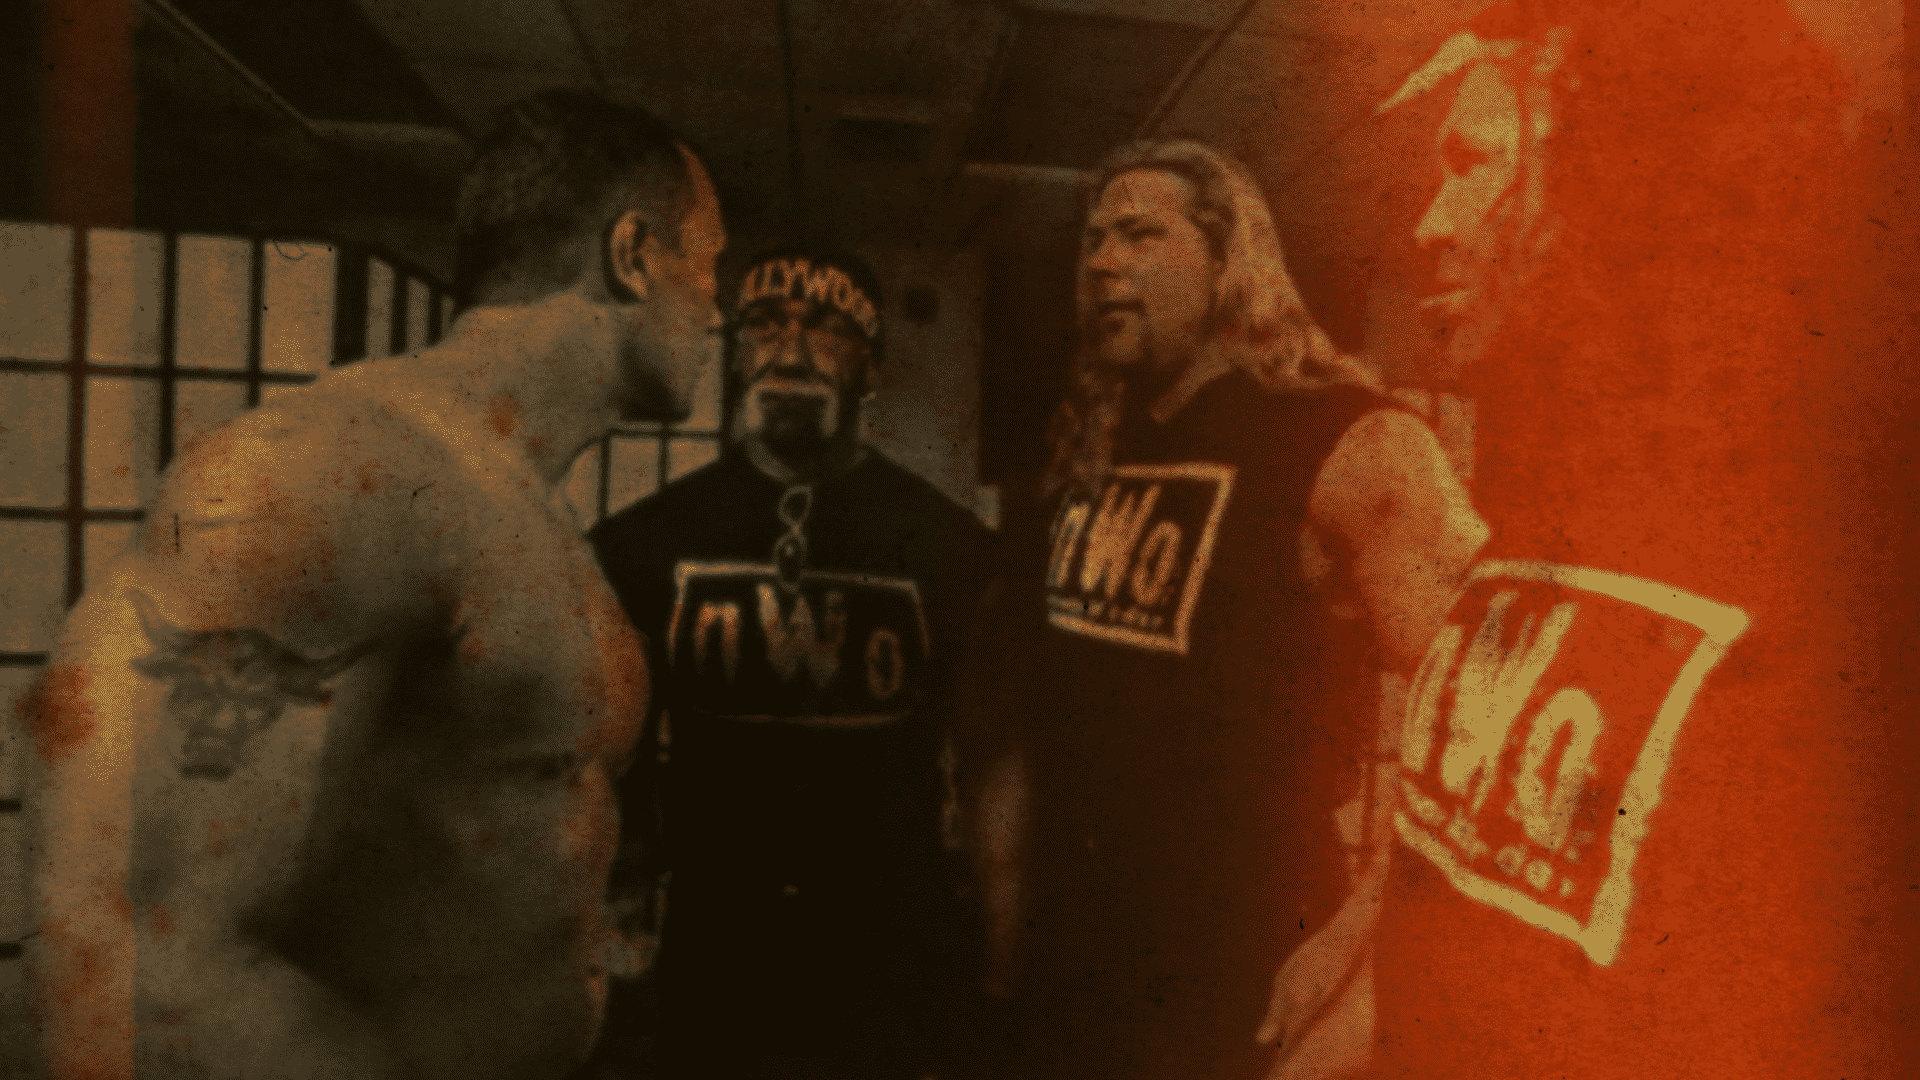 The Rock meets the New World Order